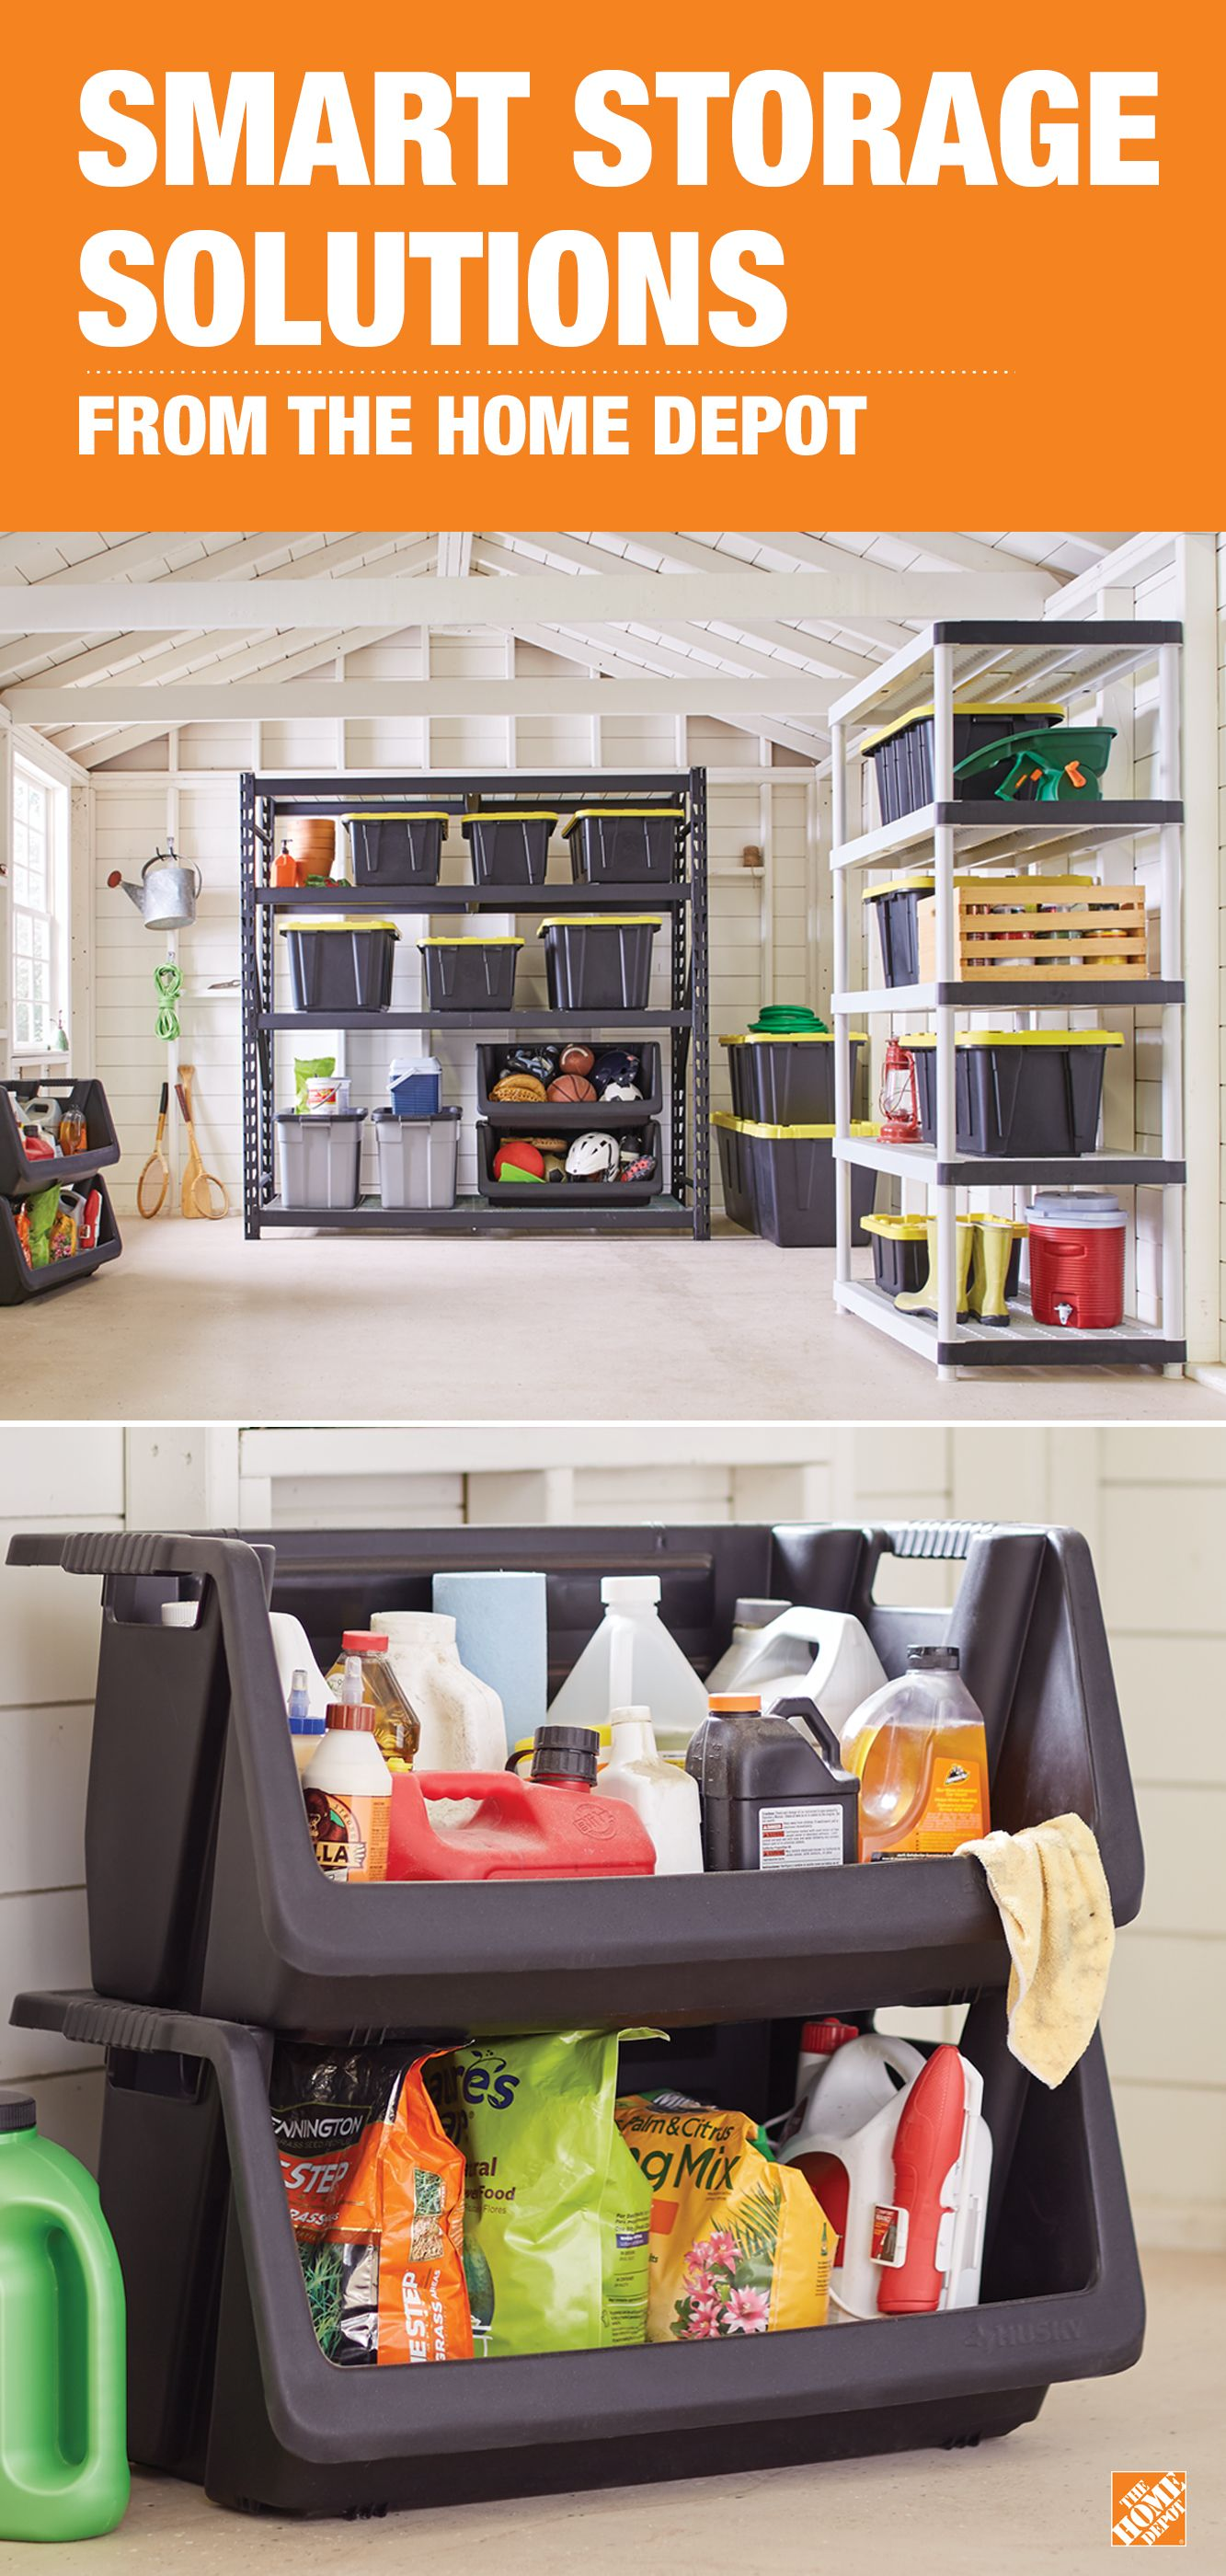 Garage garage organization via a bowl full of lemons the white bins - Maximize Space And Control Clutter With Storage Solutions From The Home Depot Sturdy Shelving Creates